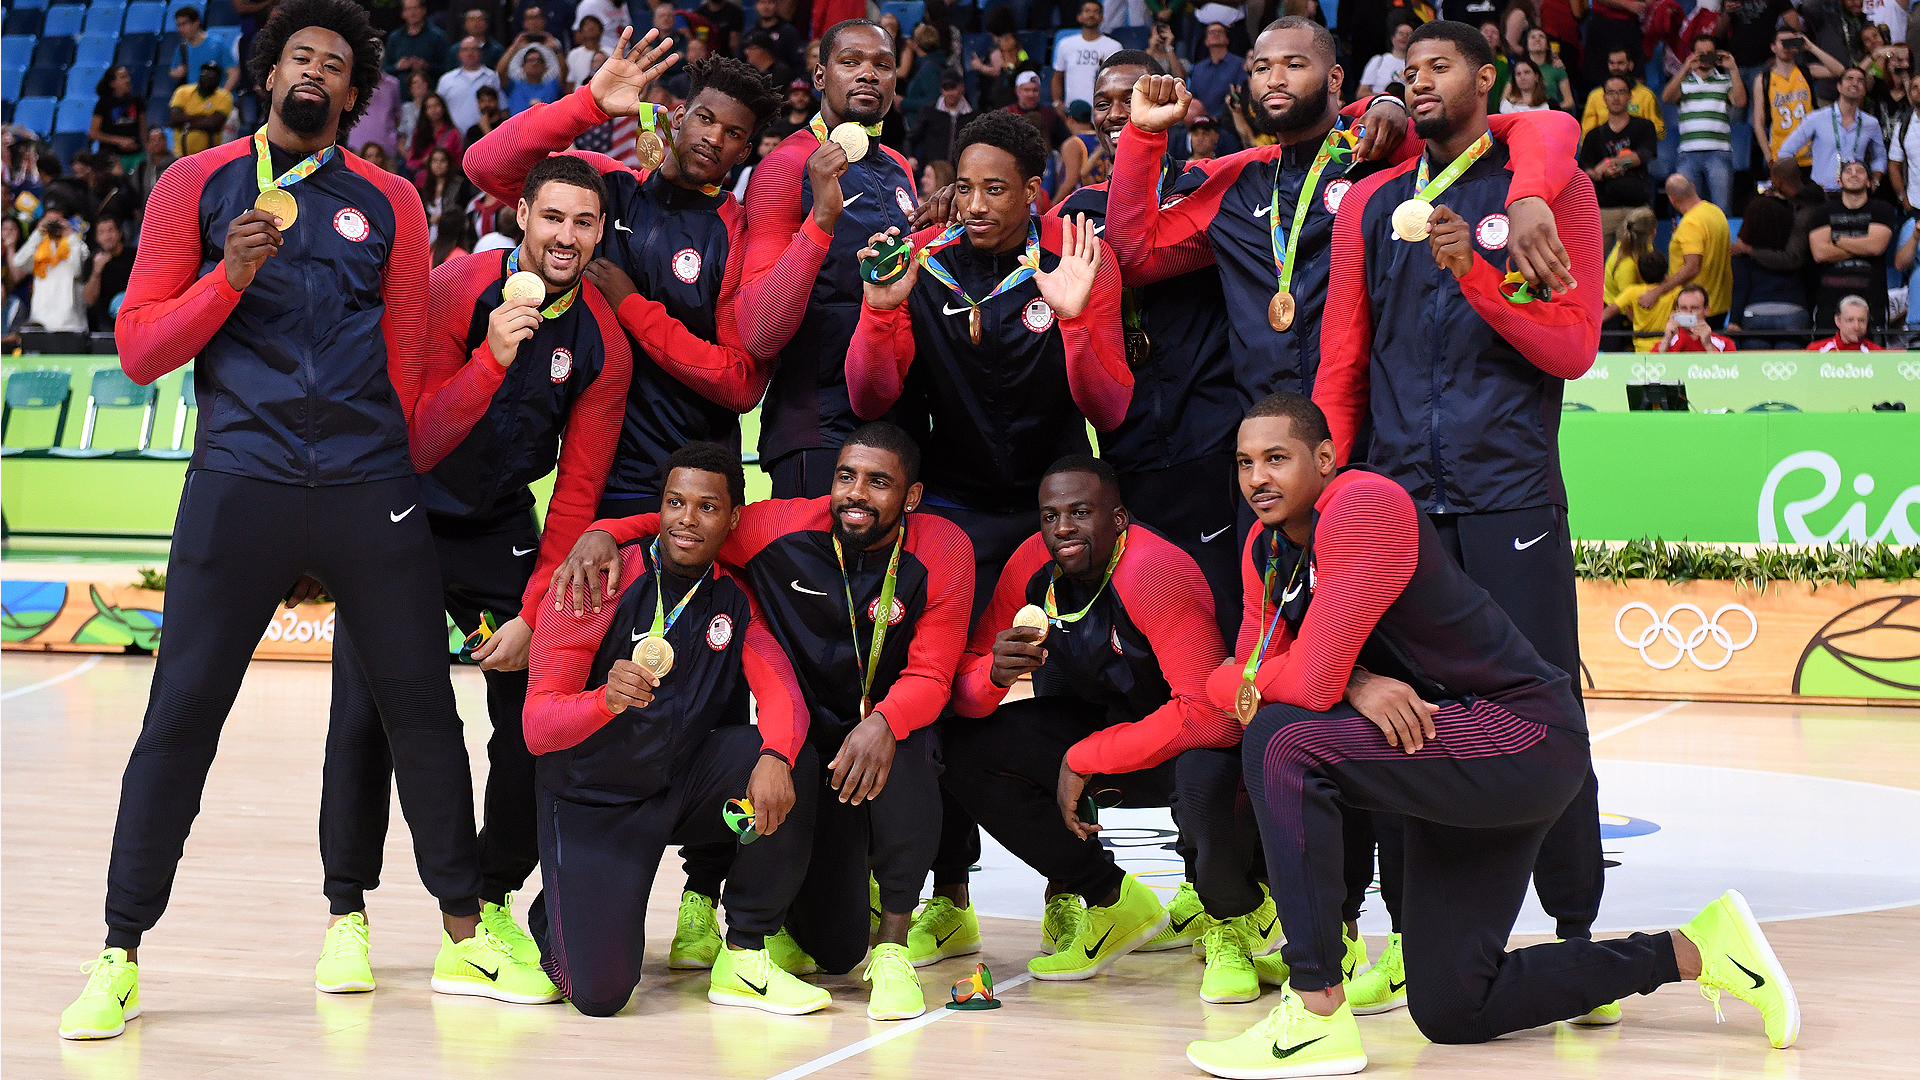 2016 uas basketball gold medal mens team